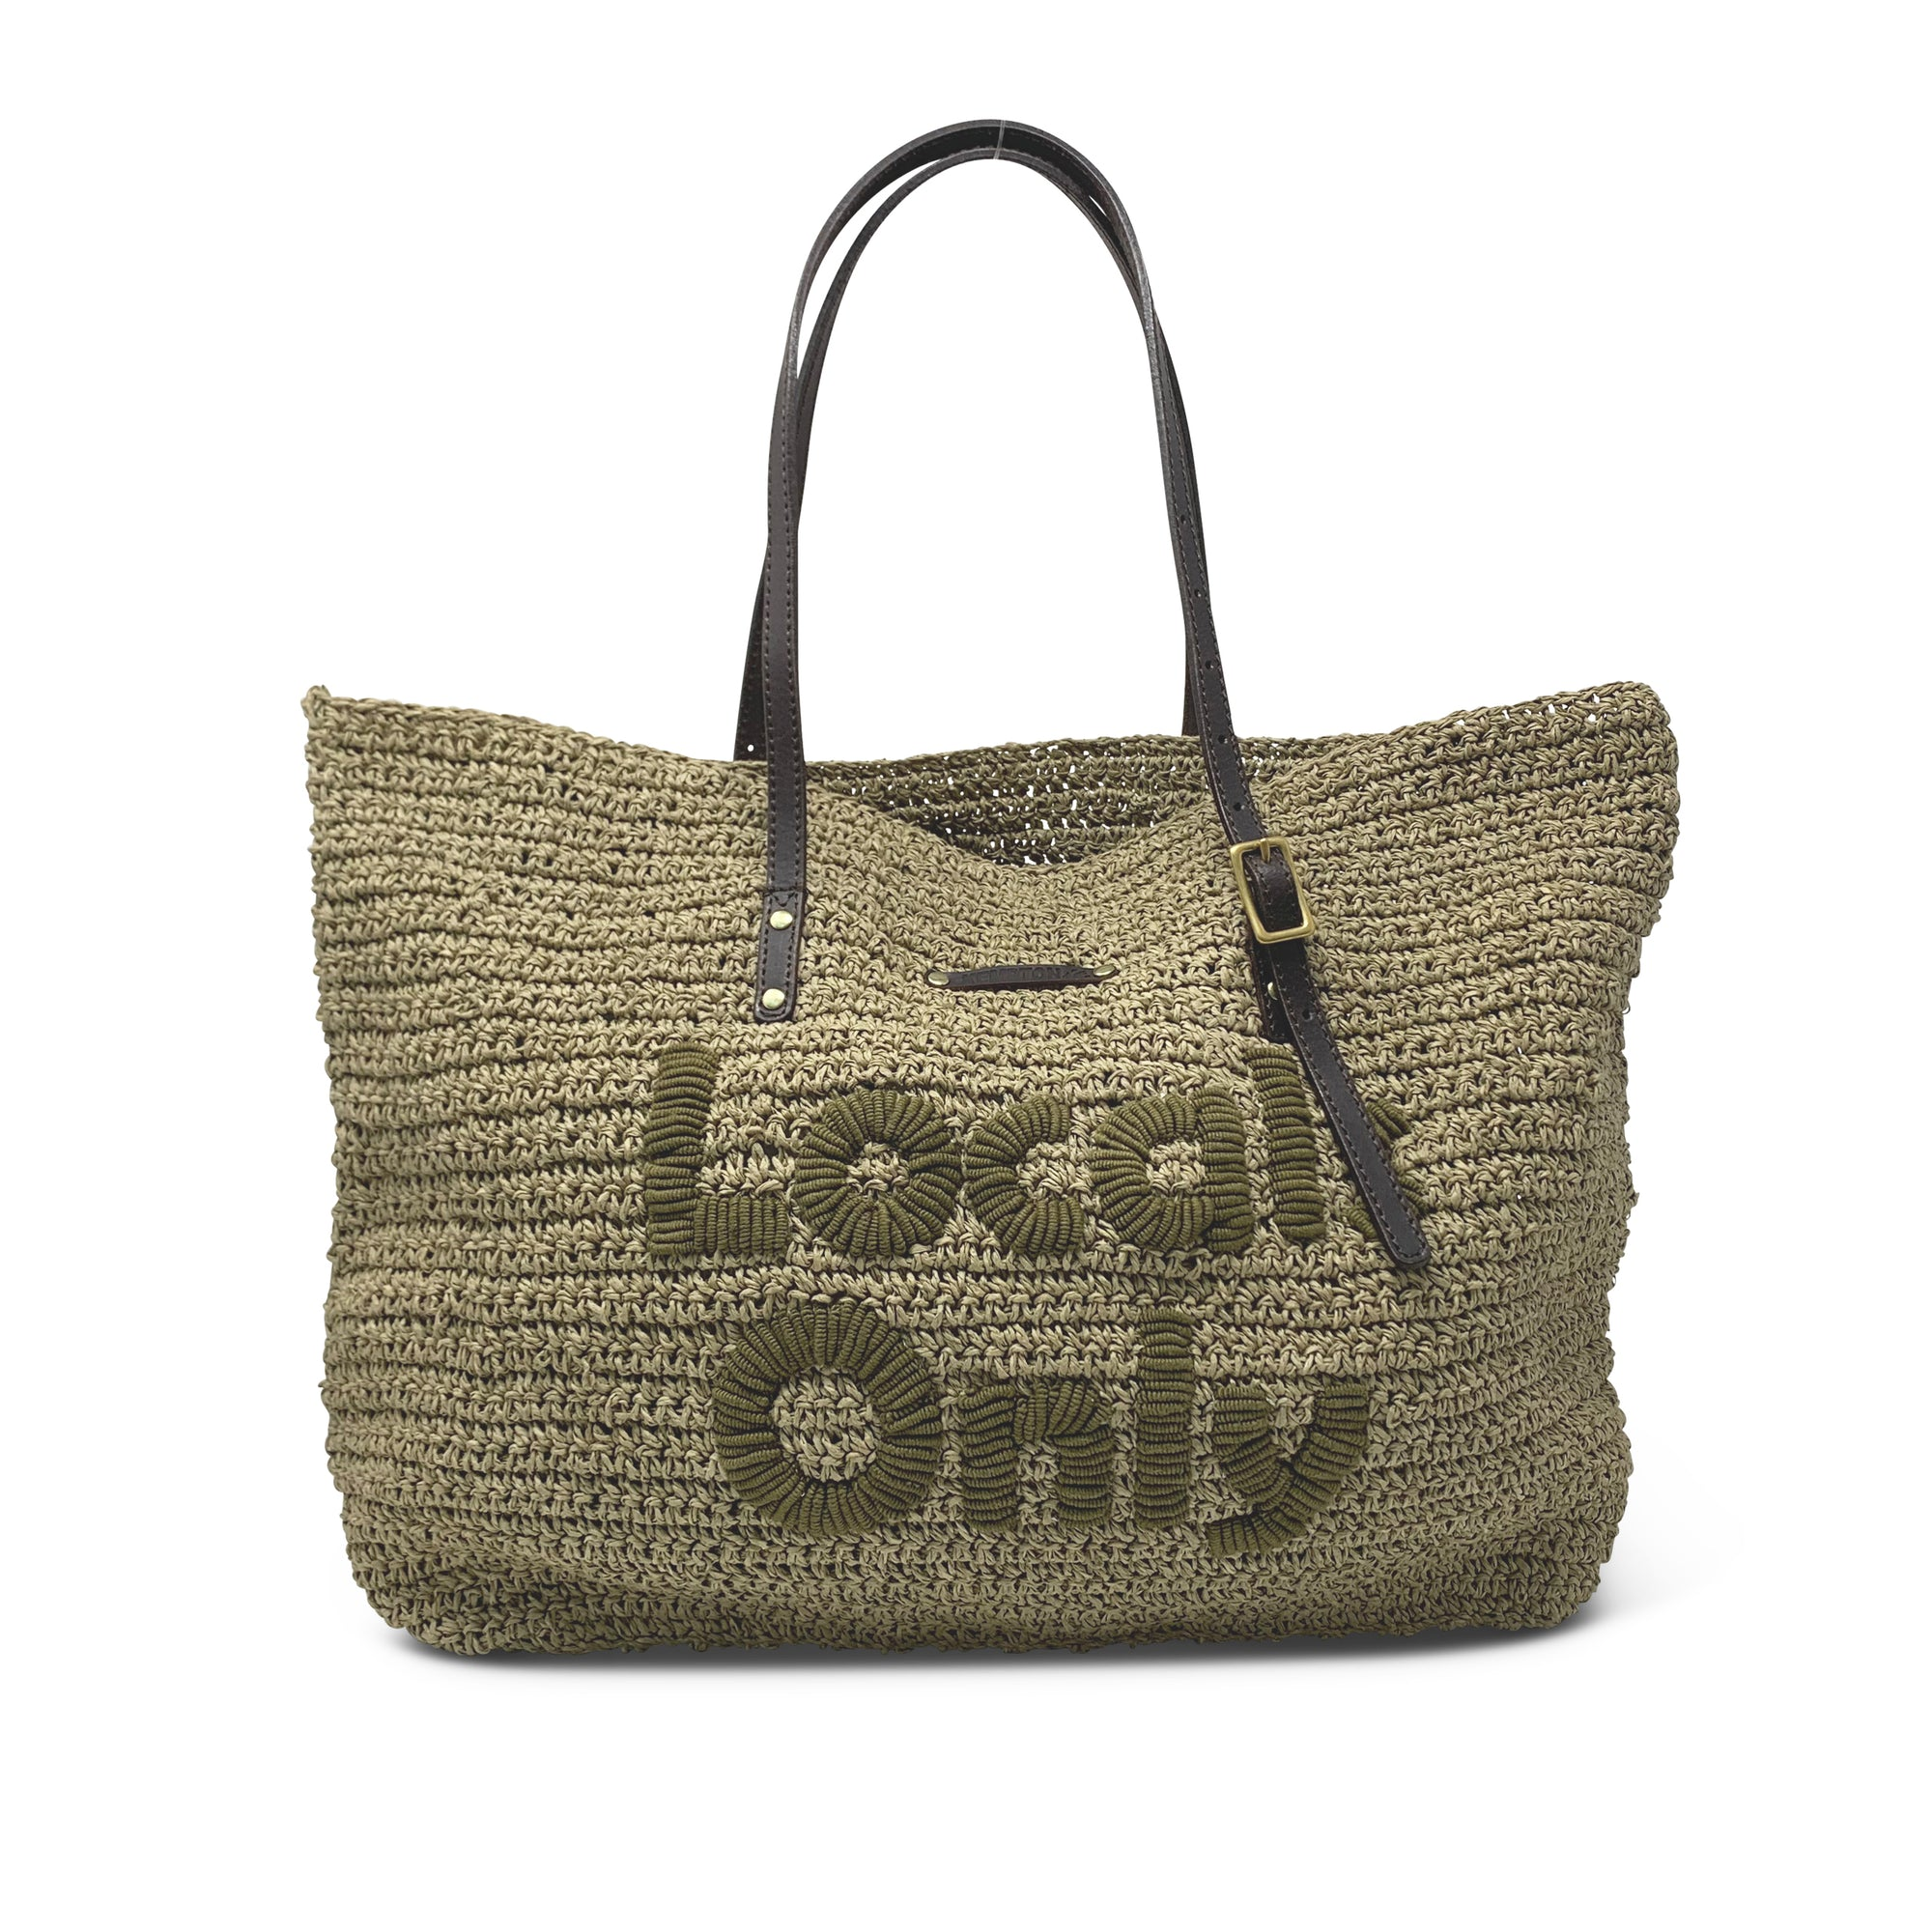 LOCALS ONLY CROCHET TOTE NATURAL/ OLIVE